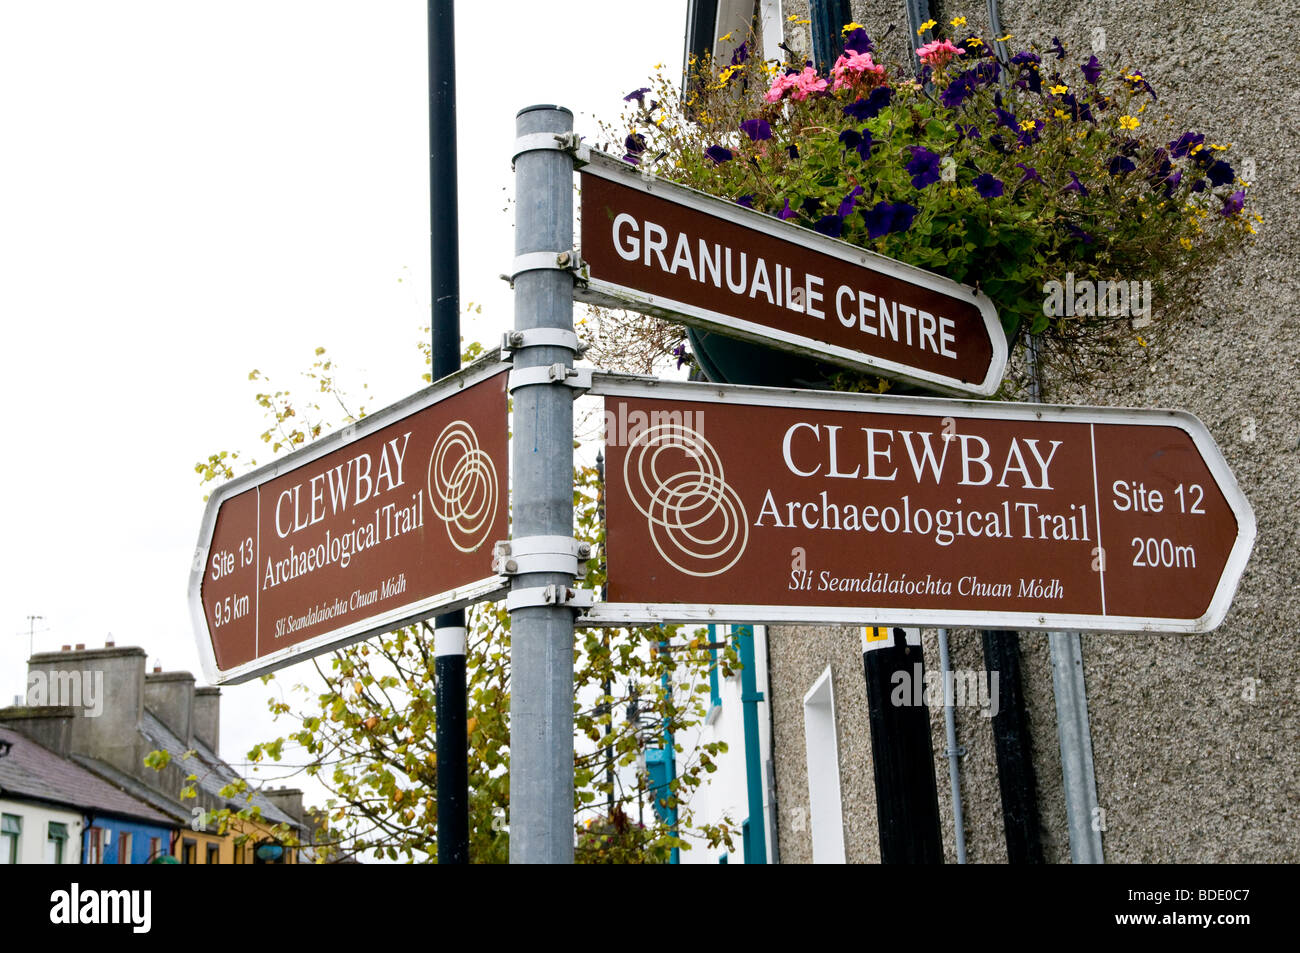 A signpost indicating the Clew Bay archaeological trail in the village of Louisburgh, County Mayo, Ireland - Stock Image